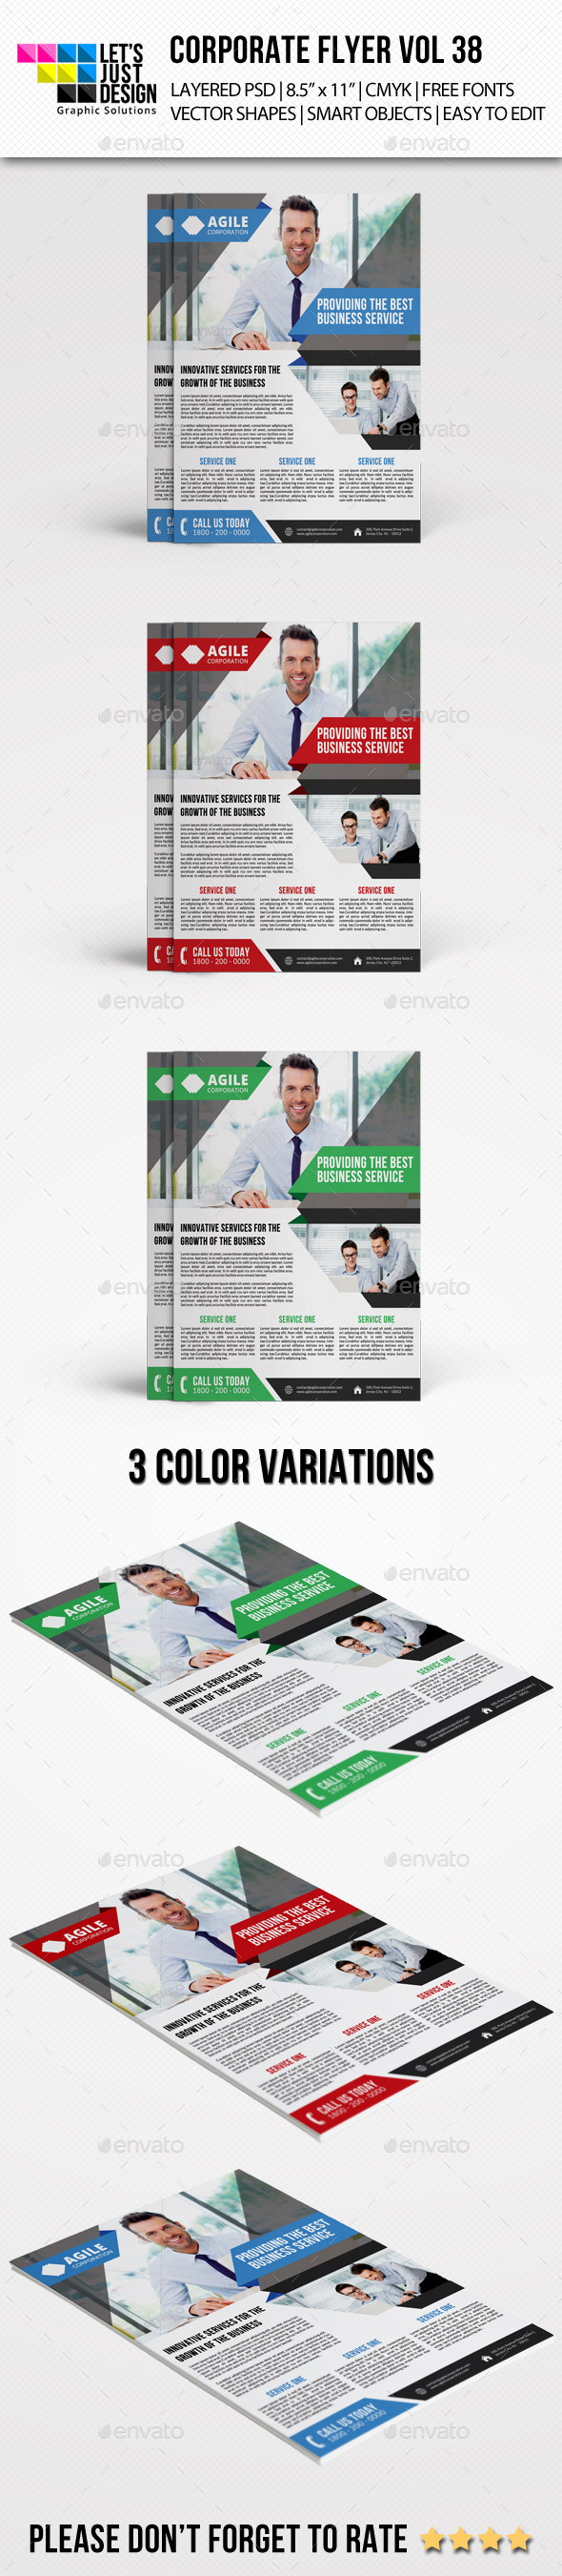 Corporate Flyer Template Vol 38 - Corporate Flyers